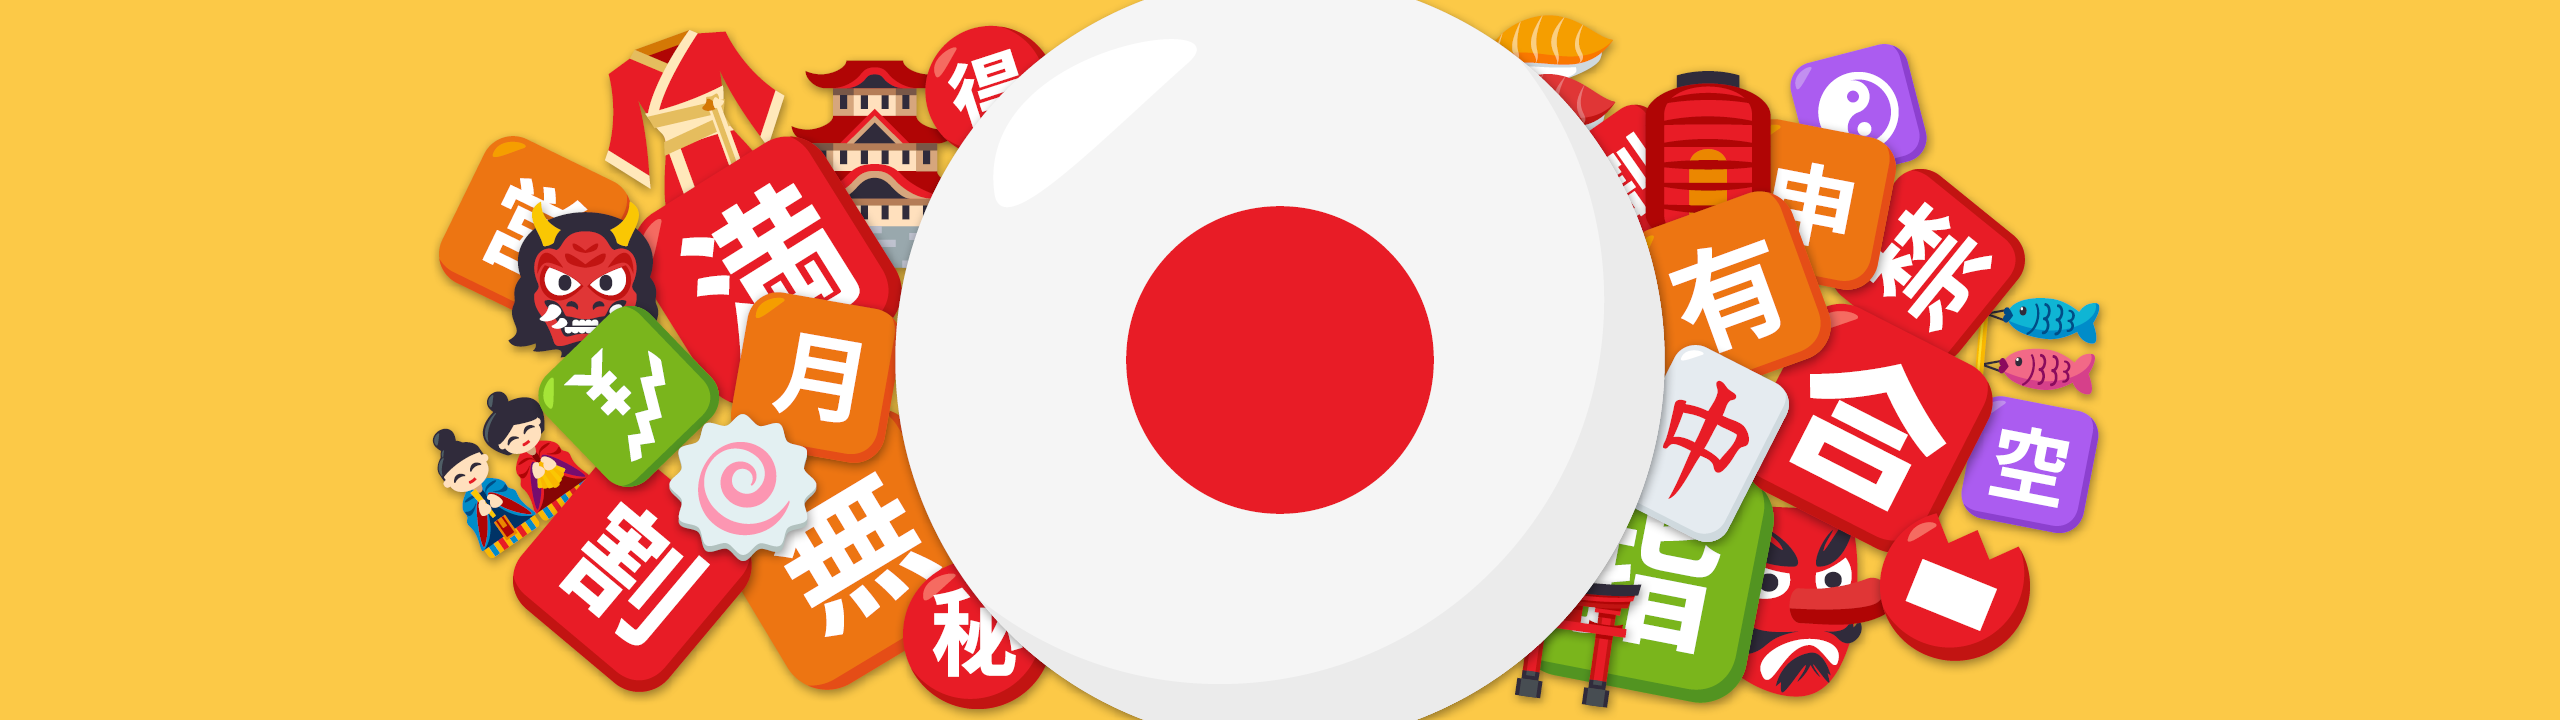 What Do These East Asian Emojis Really Mean Emojione Blog